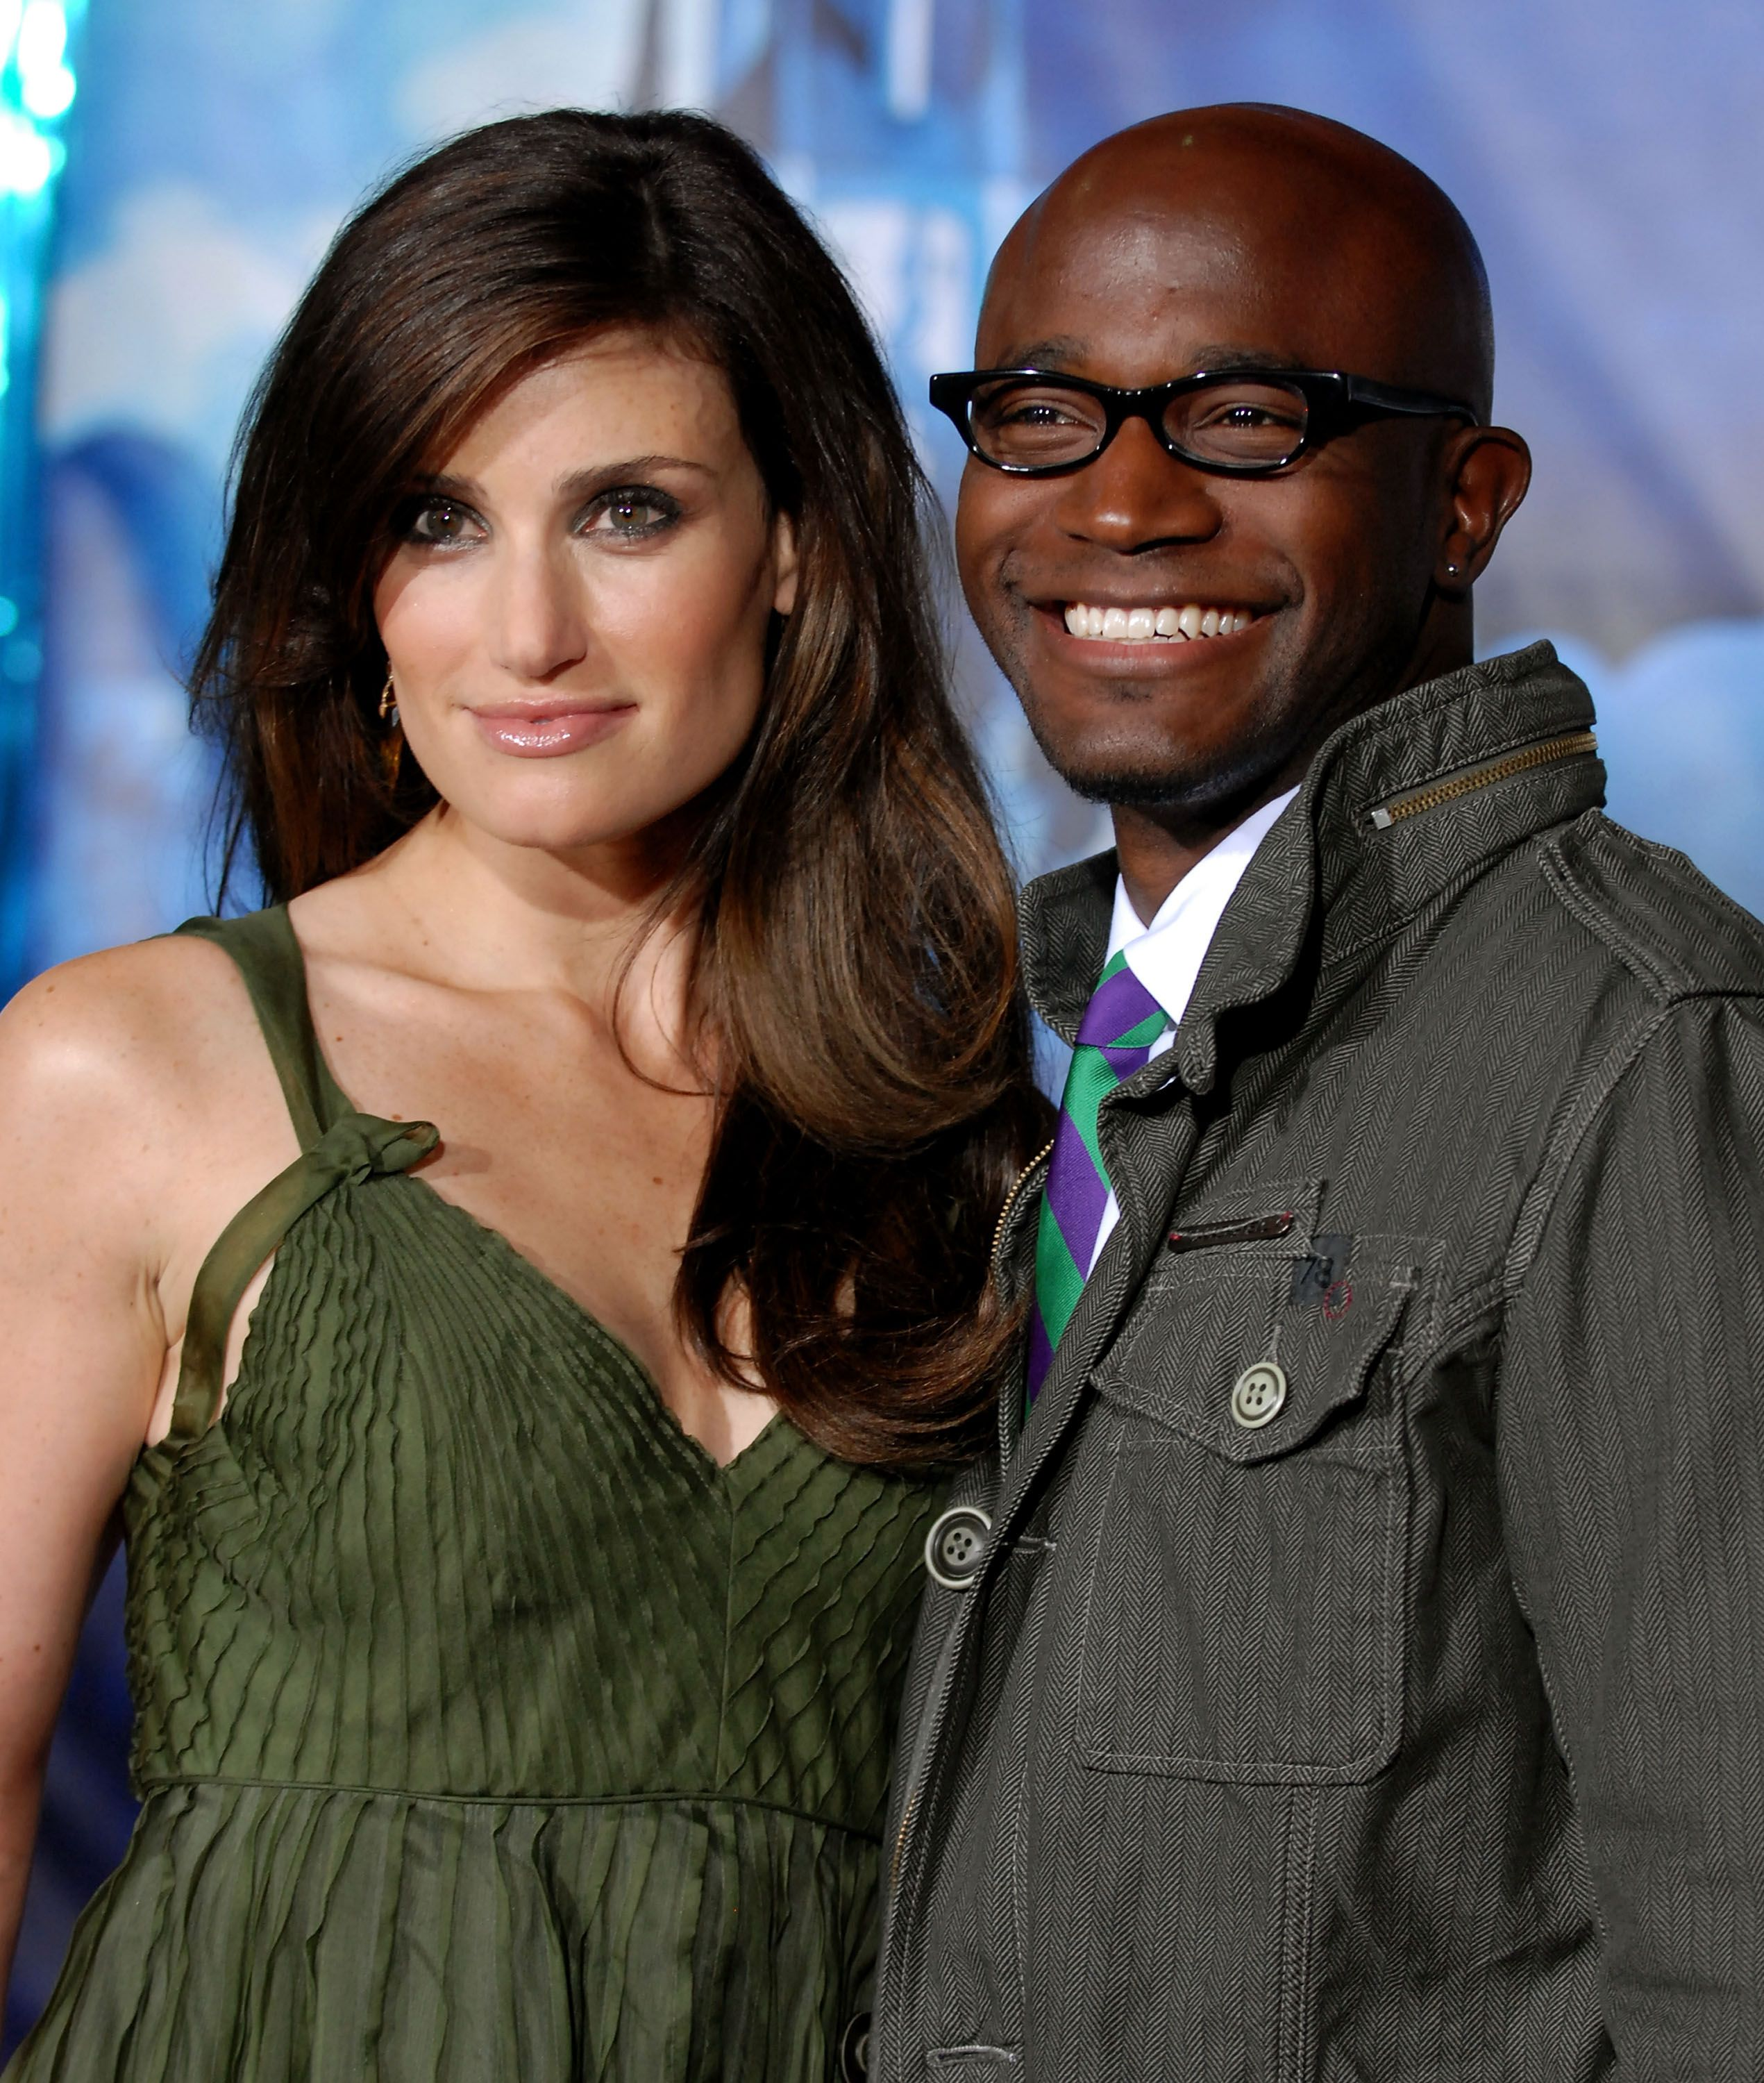 """Actress Idina Menzel and actor Taye Diggs arrive at the premiere of """"Enchanted"""" held in Hollywood, California on November 17, 2007   Photo: Getty Images"""